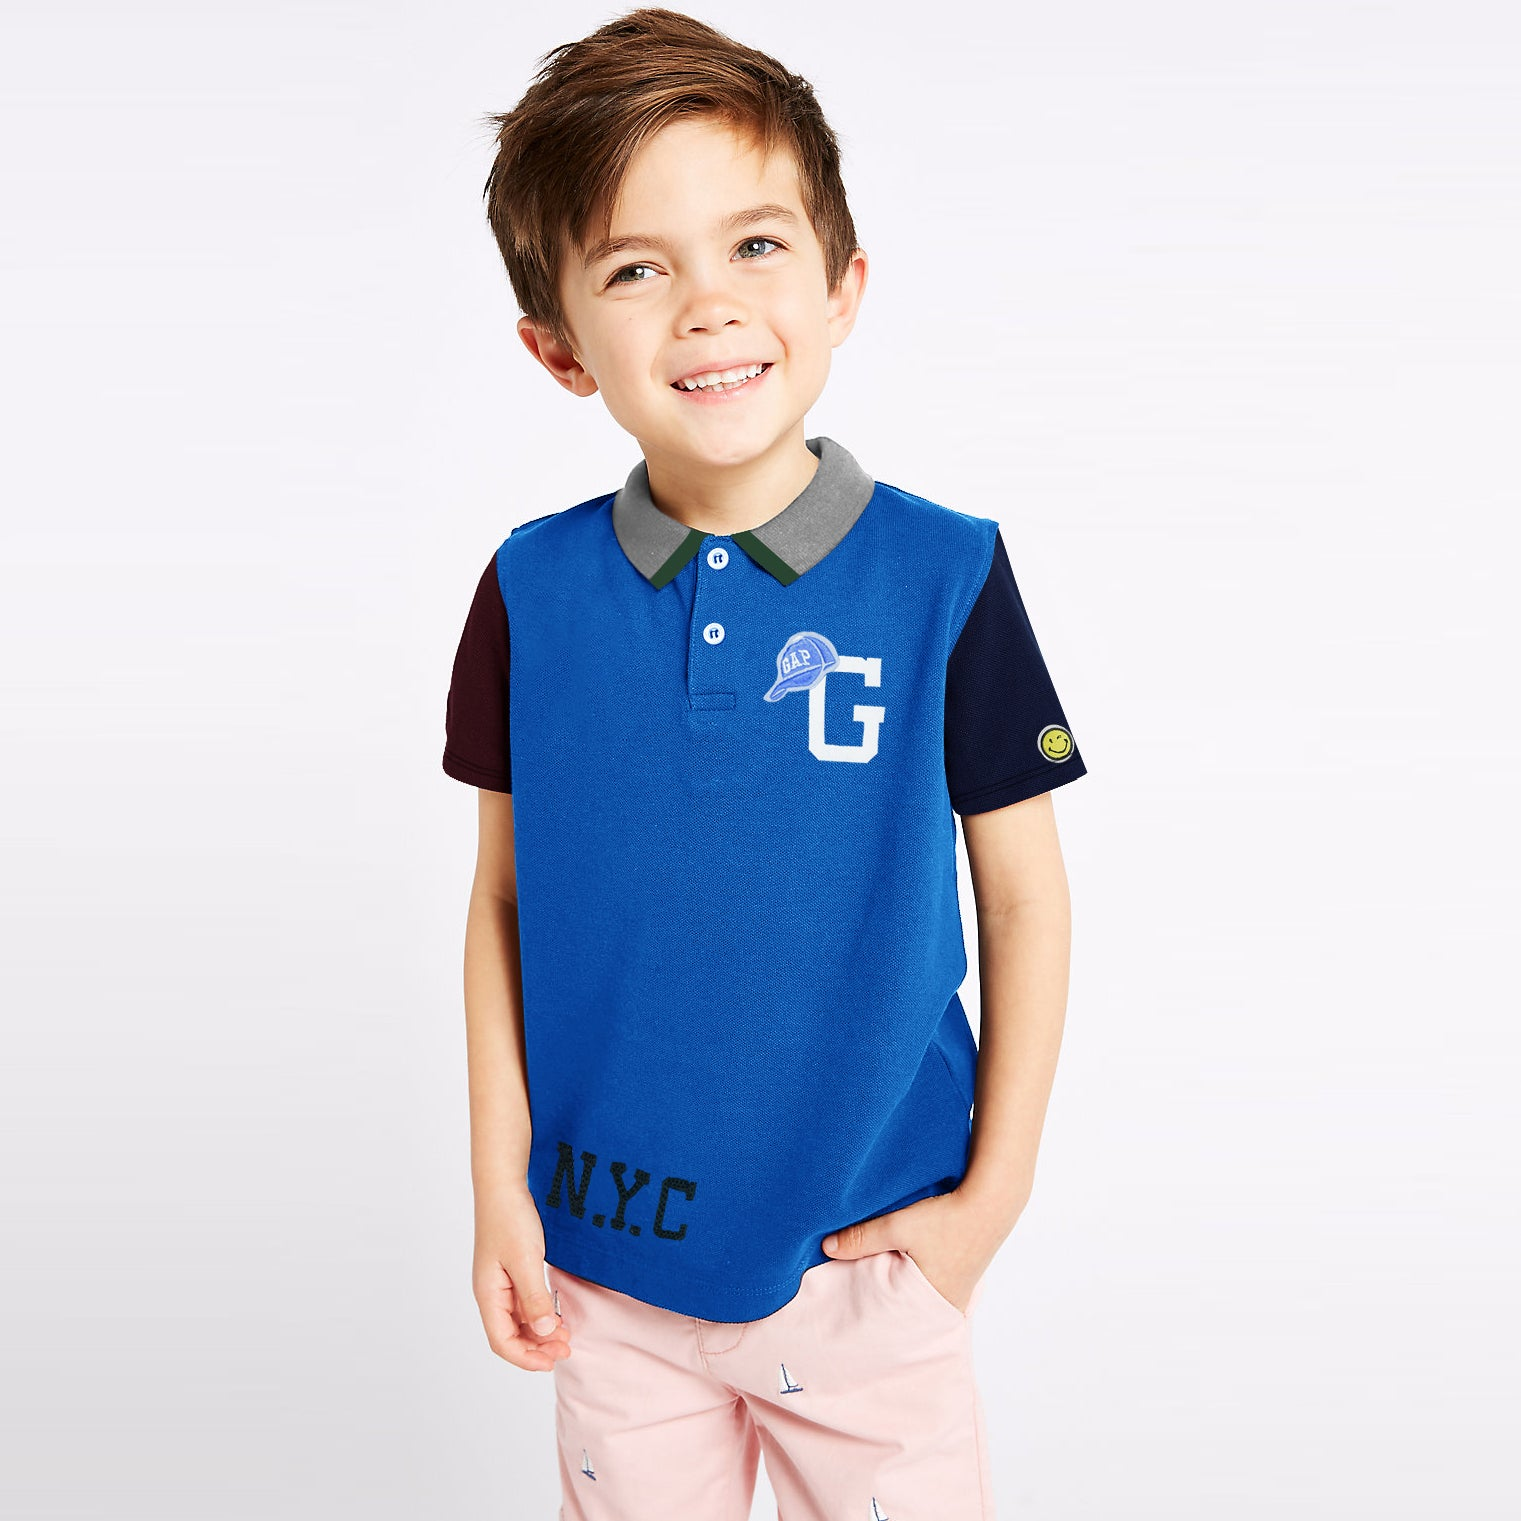 GAP Half Sleeve P.Q Polo Shirt For Kids-BE8629